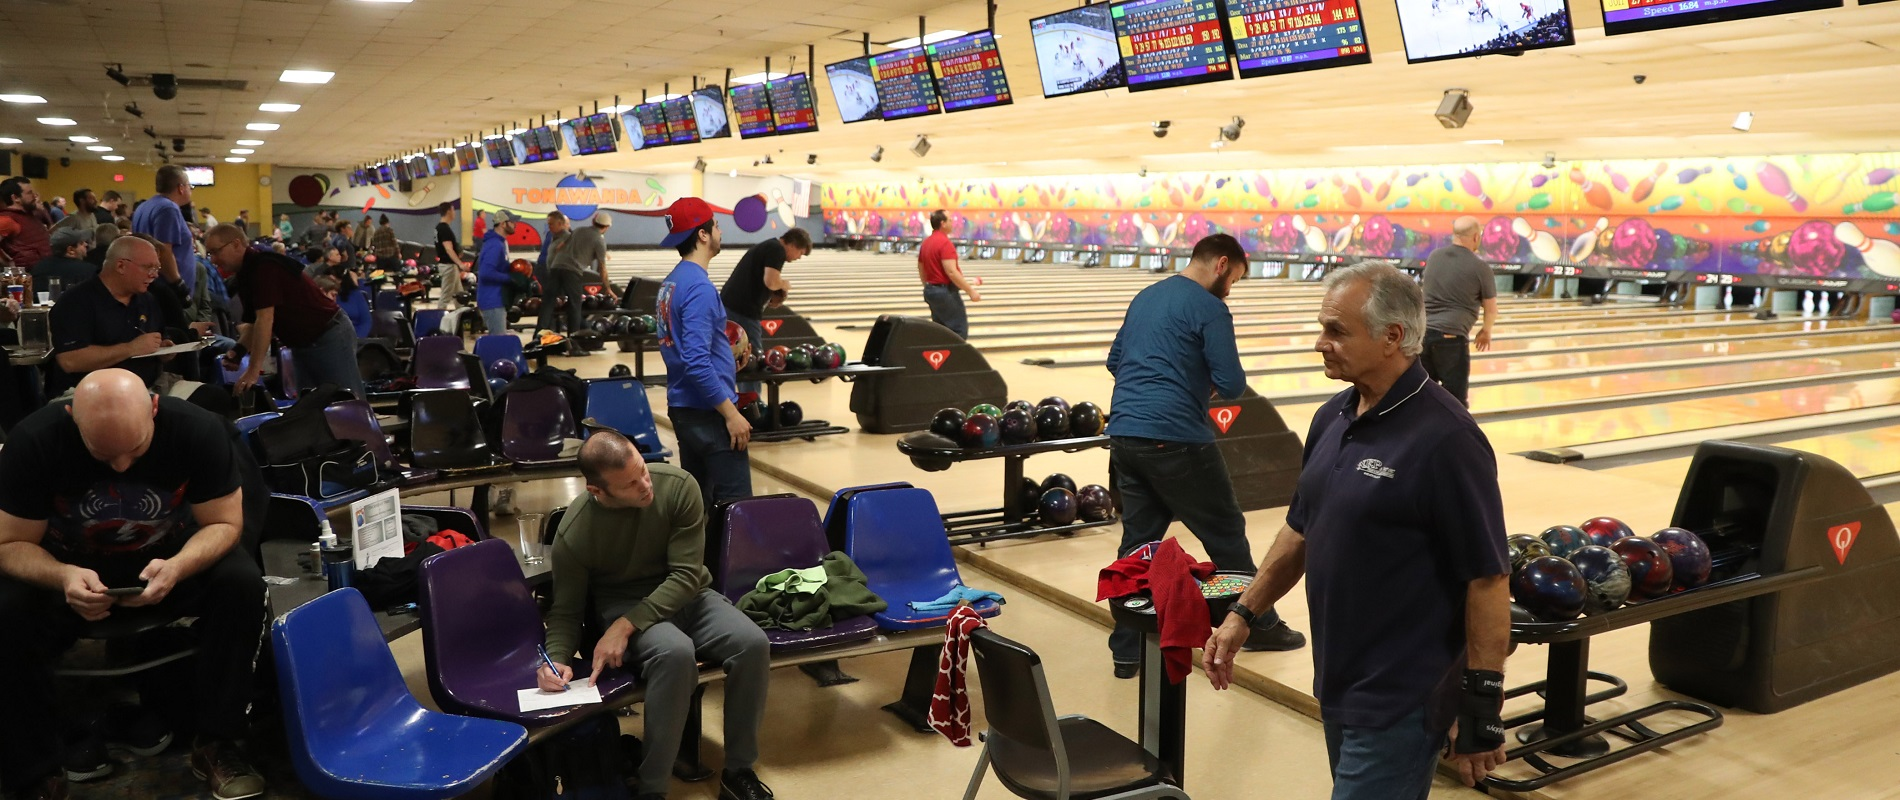 Jeff Miers writes, of places like Tonawanda Bowling Center, 'Around here, people still love to bowl, even if the blue-collar jobs they packed the alleys to forget about for a while are, largely, long gone.' (Sharon Cantillon/Buffalo News)